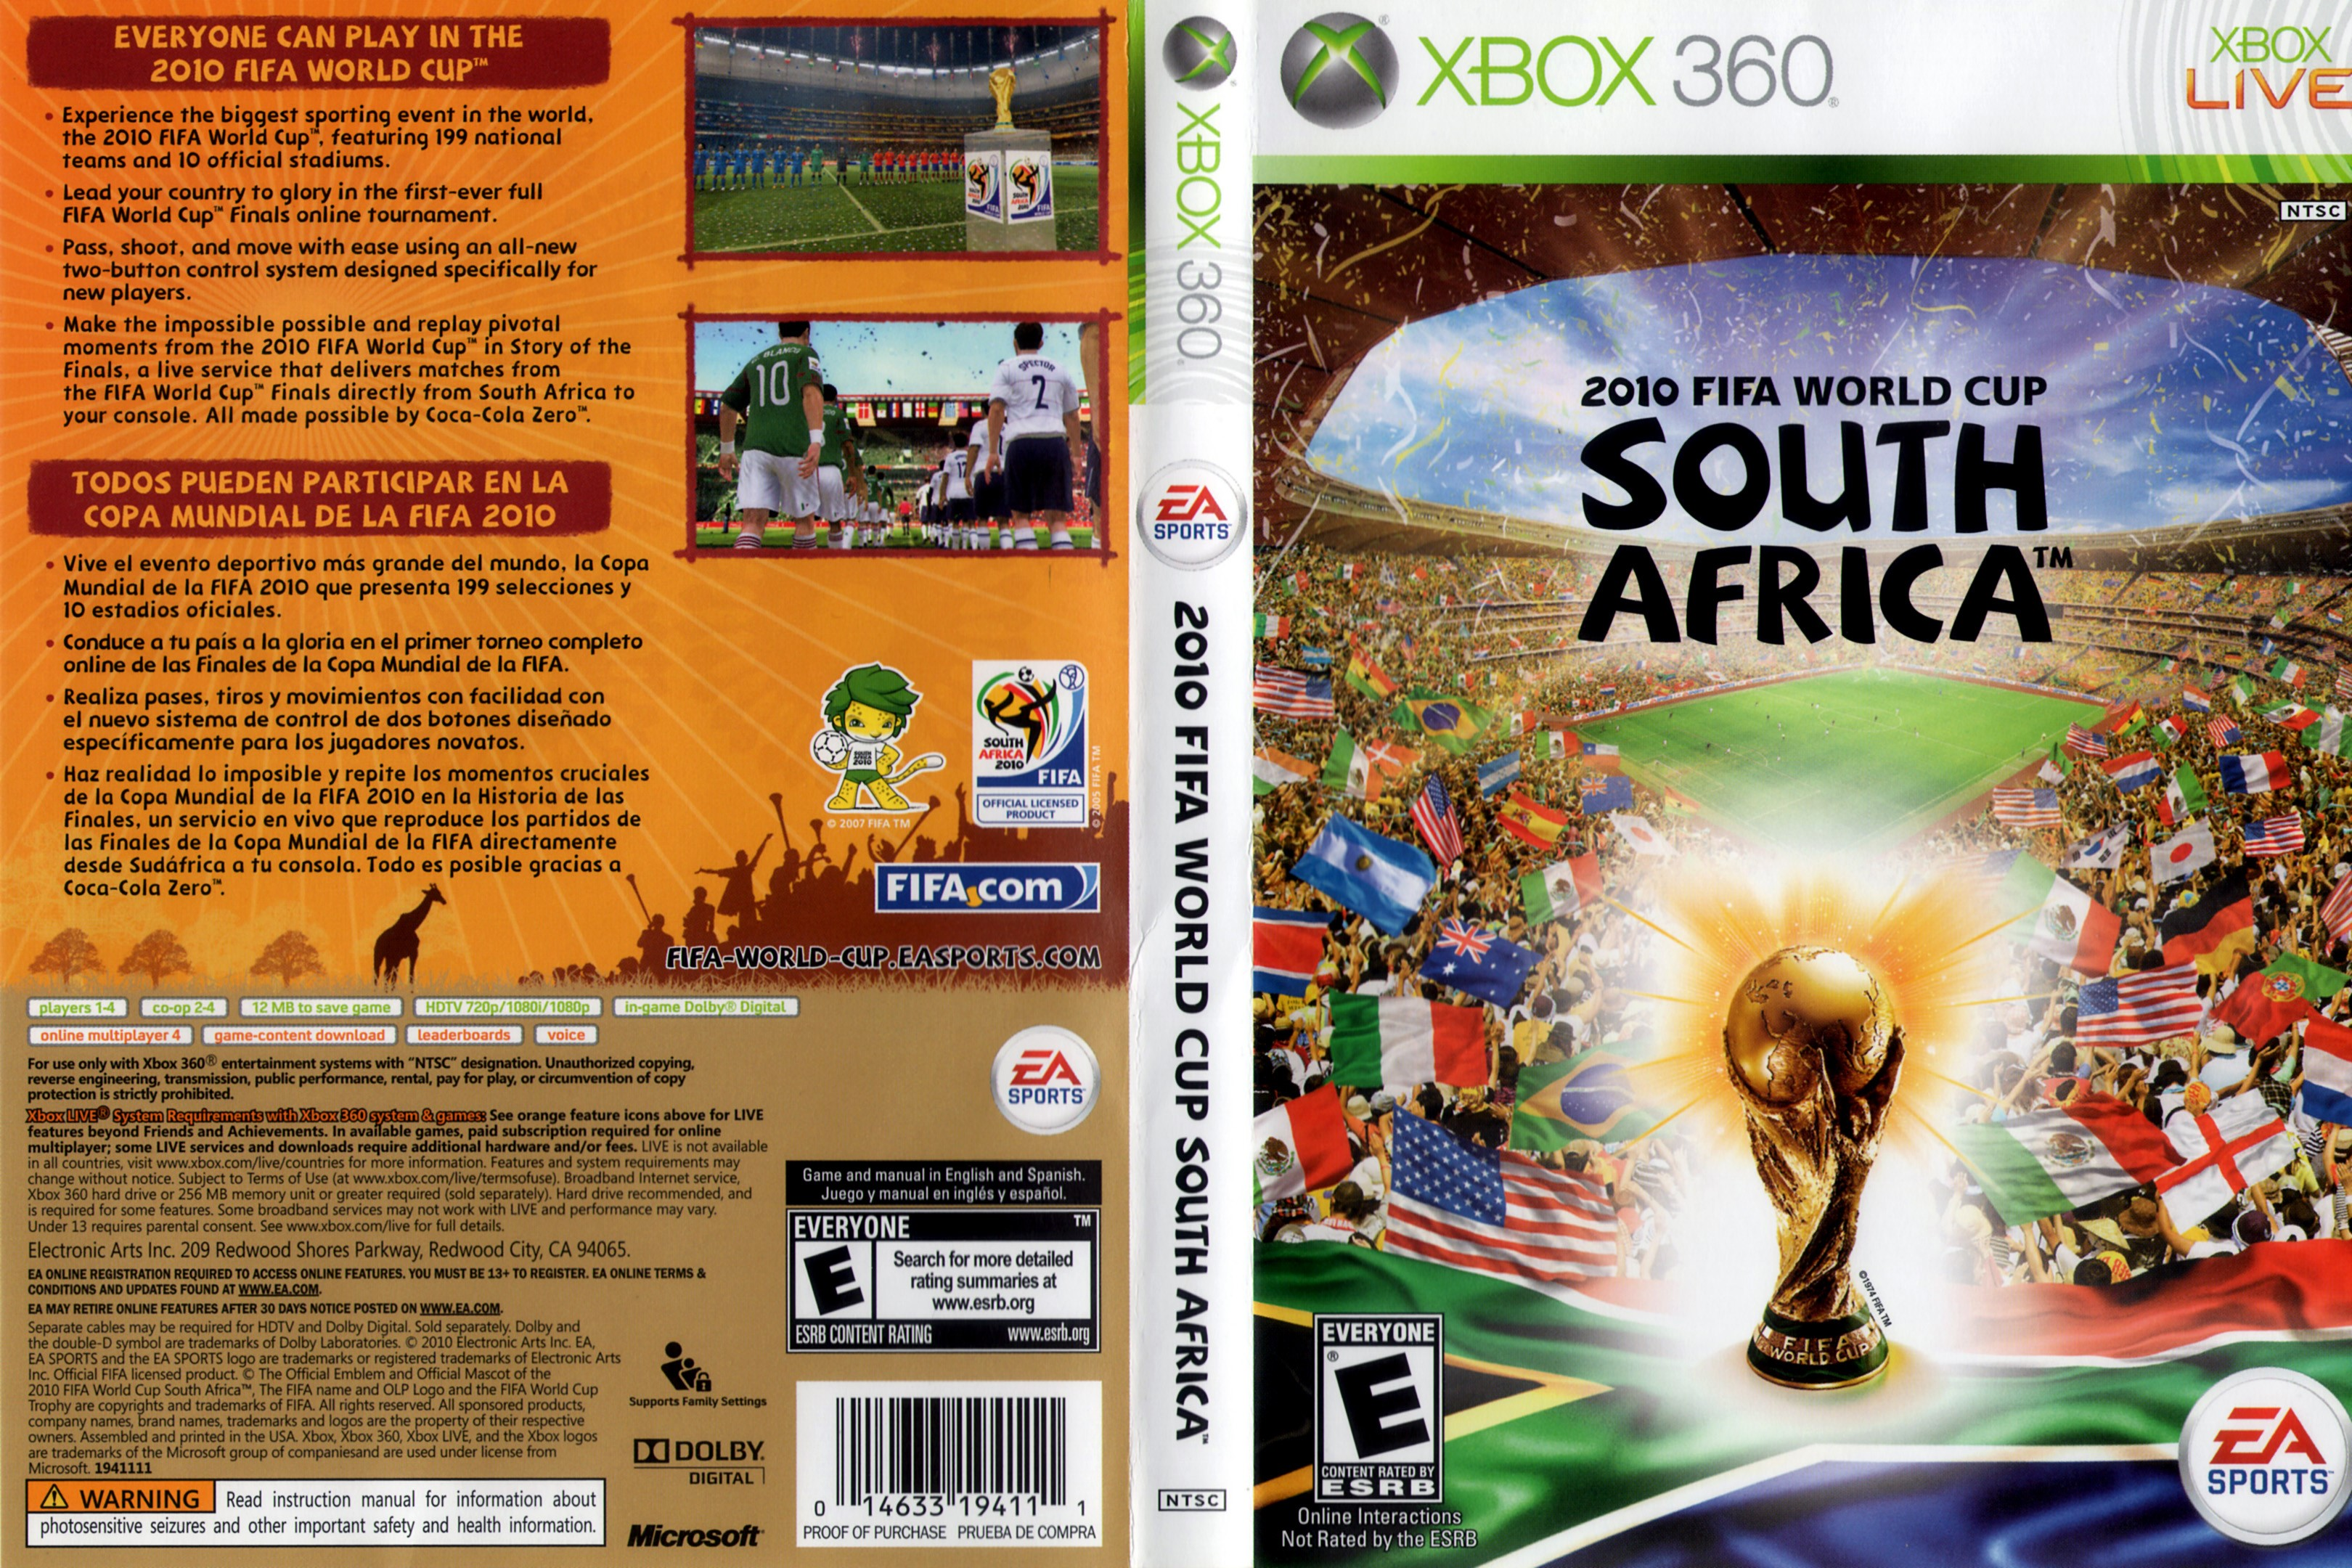 MICROSOFT Microsoft XBOX 360 Game 2010 FIFA WORLD CUP SOUTH AFRICA